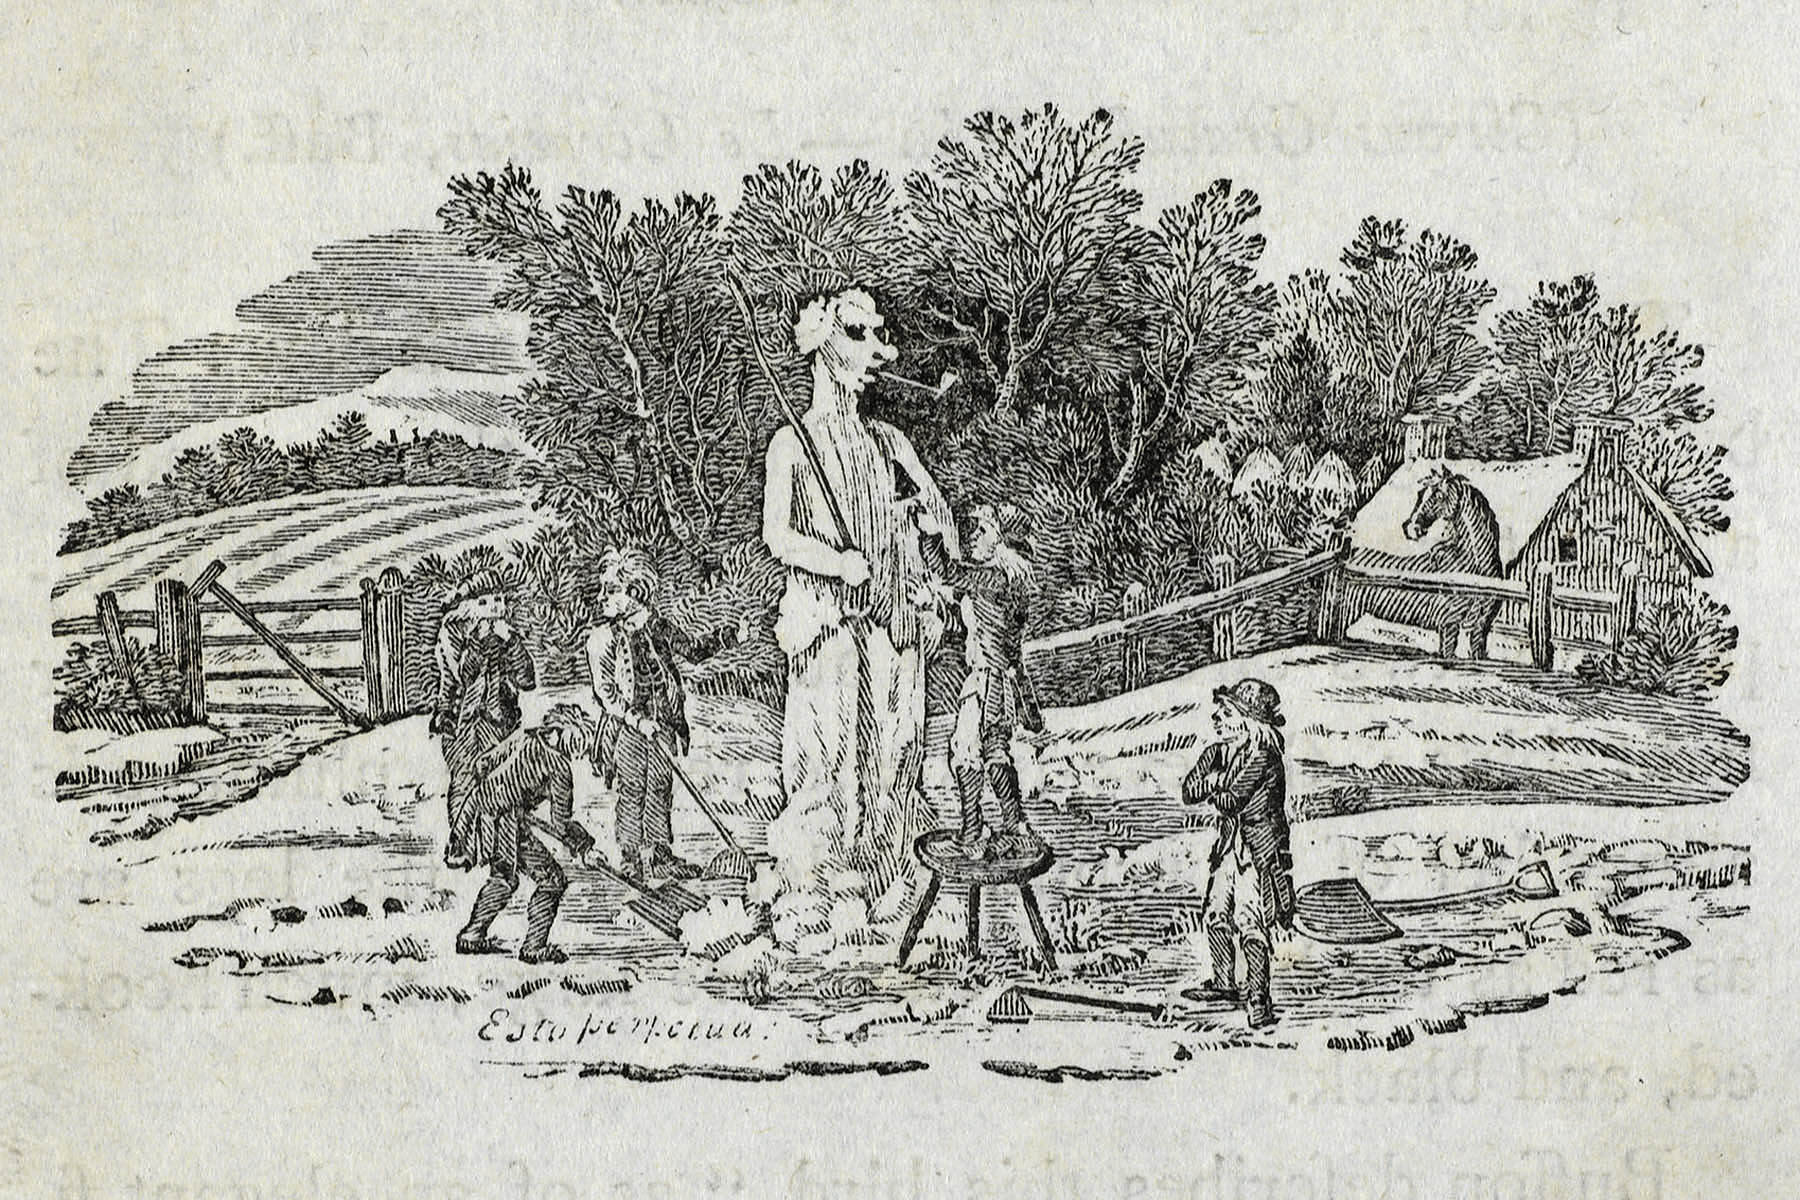 Building a snowman at Cherryburn. Thomas Bewick (Special Collections: Bradshaw-Bewick collection)